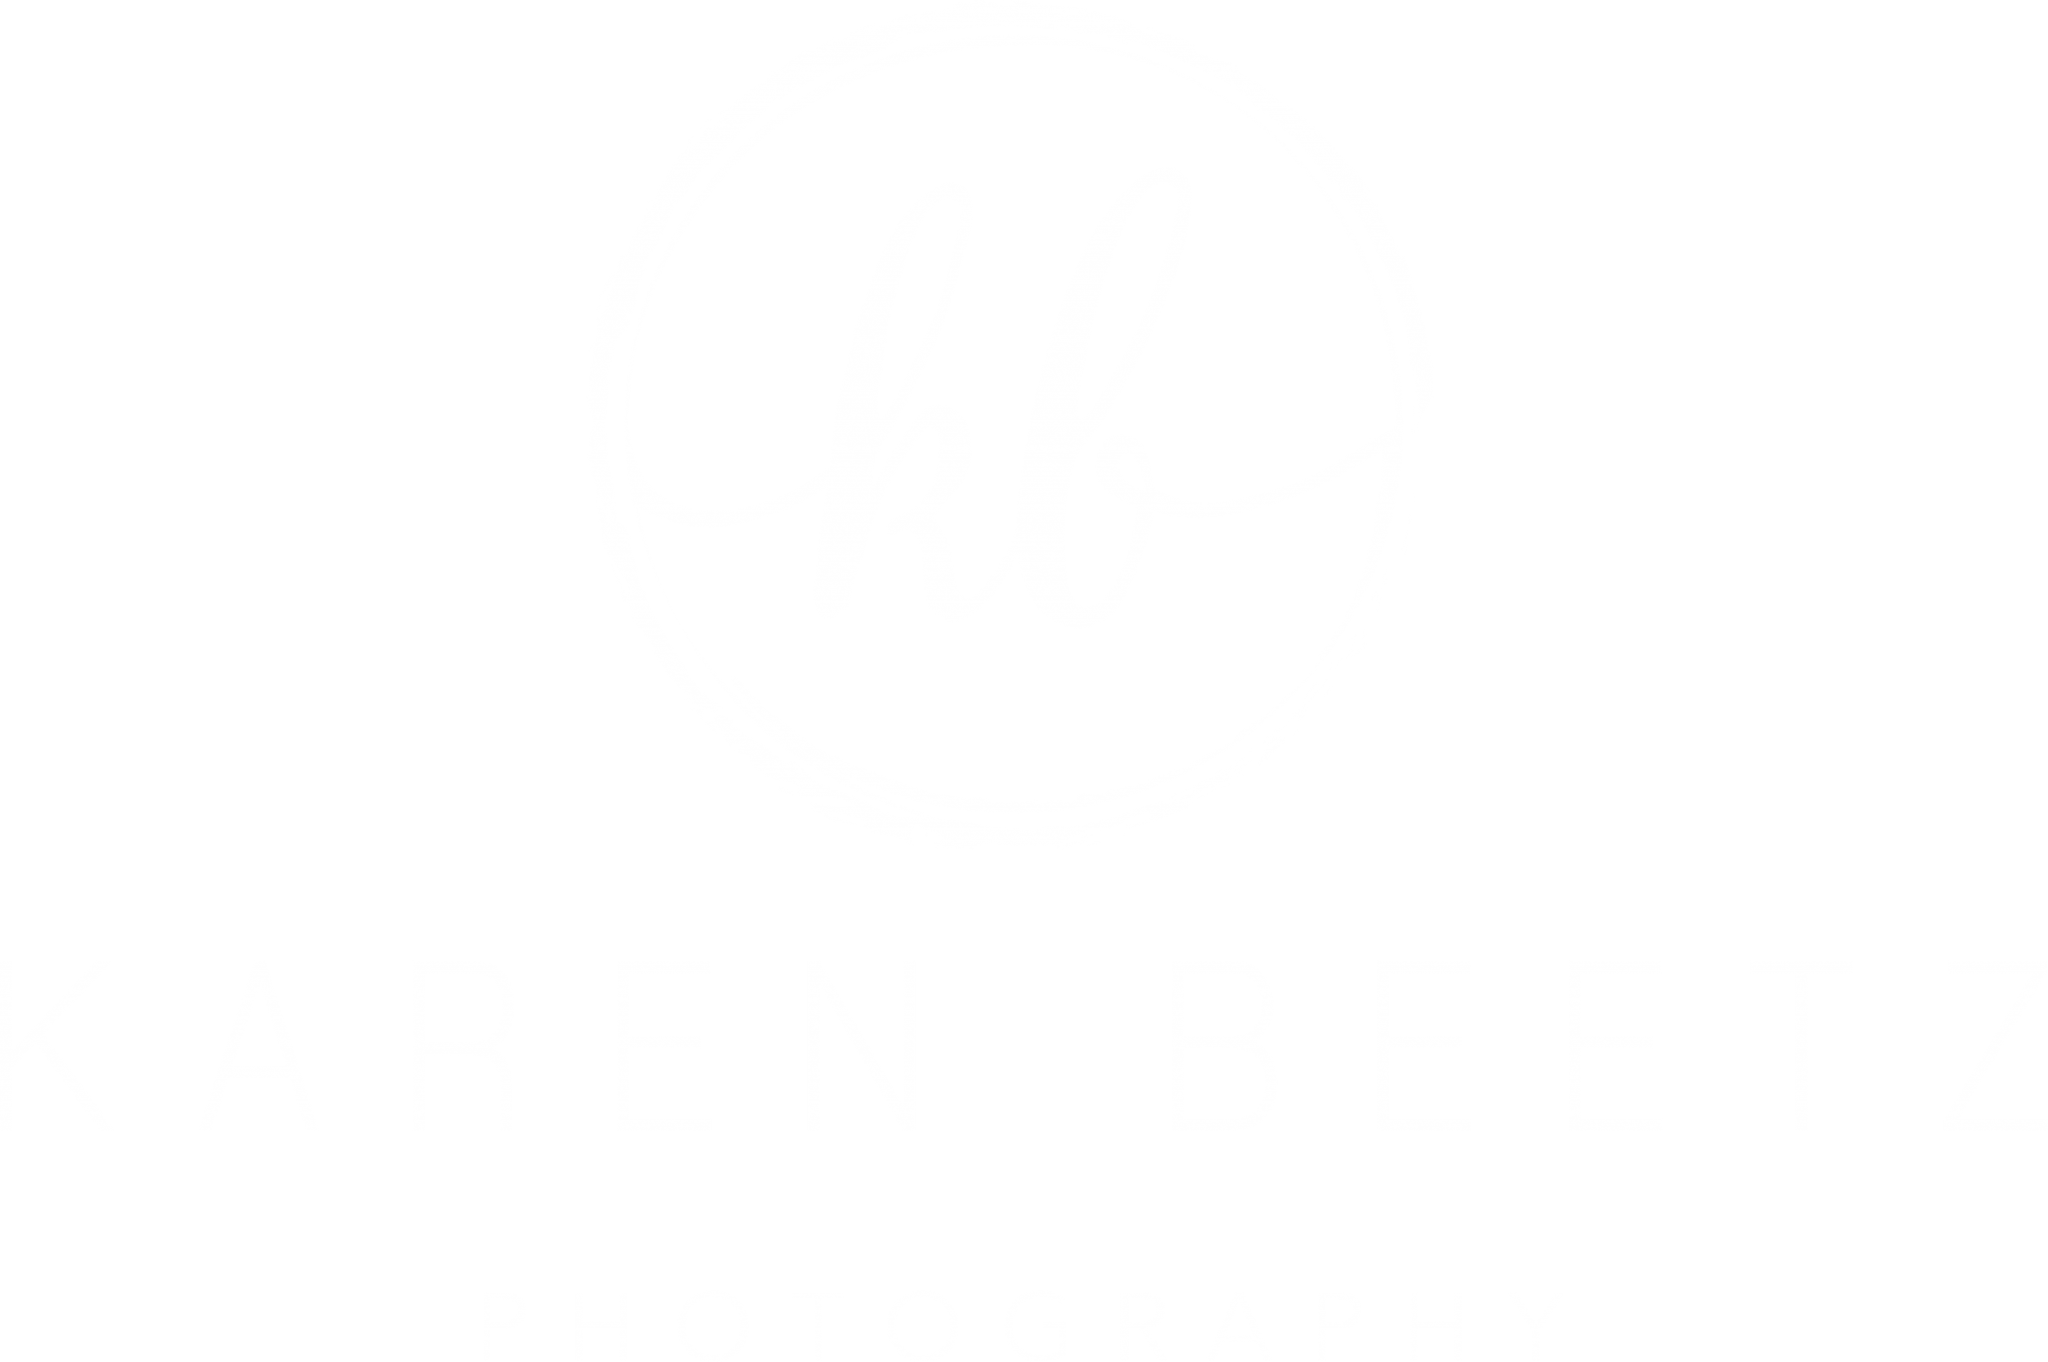 Karen Beetz Photography